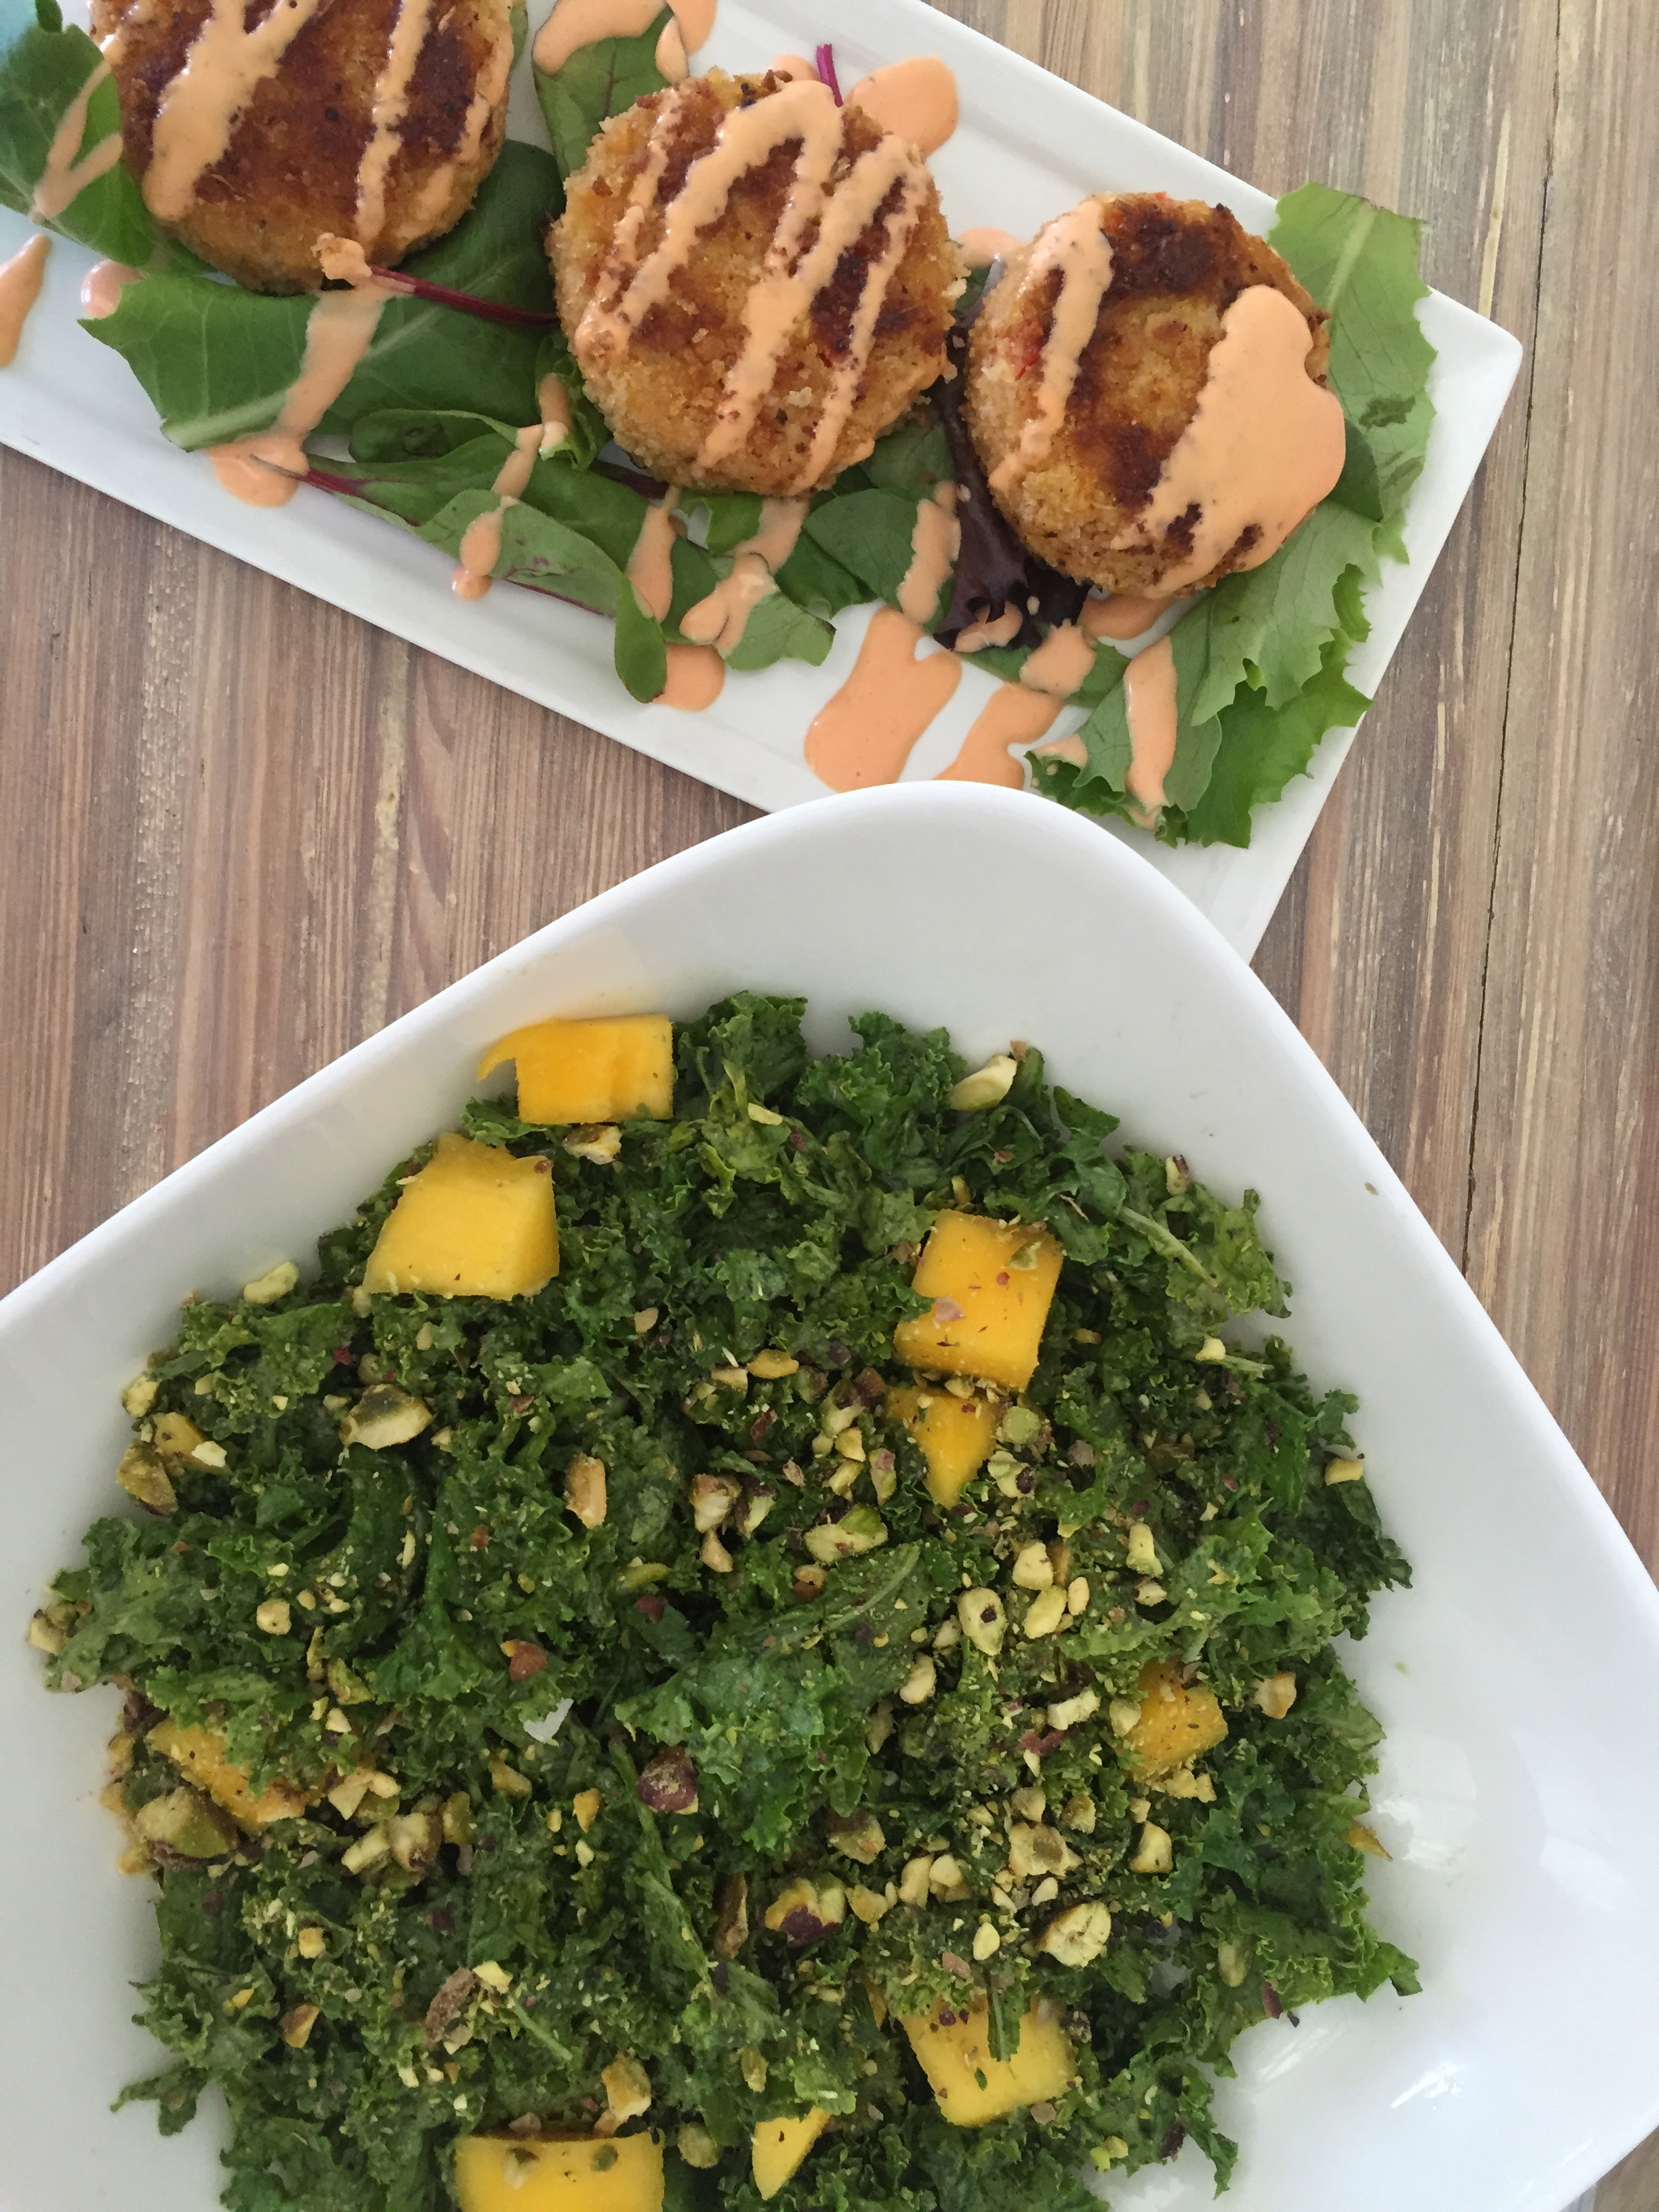 Mango + Kale salad and Artichoke Fritters from Seed